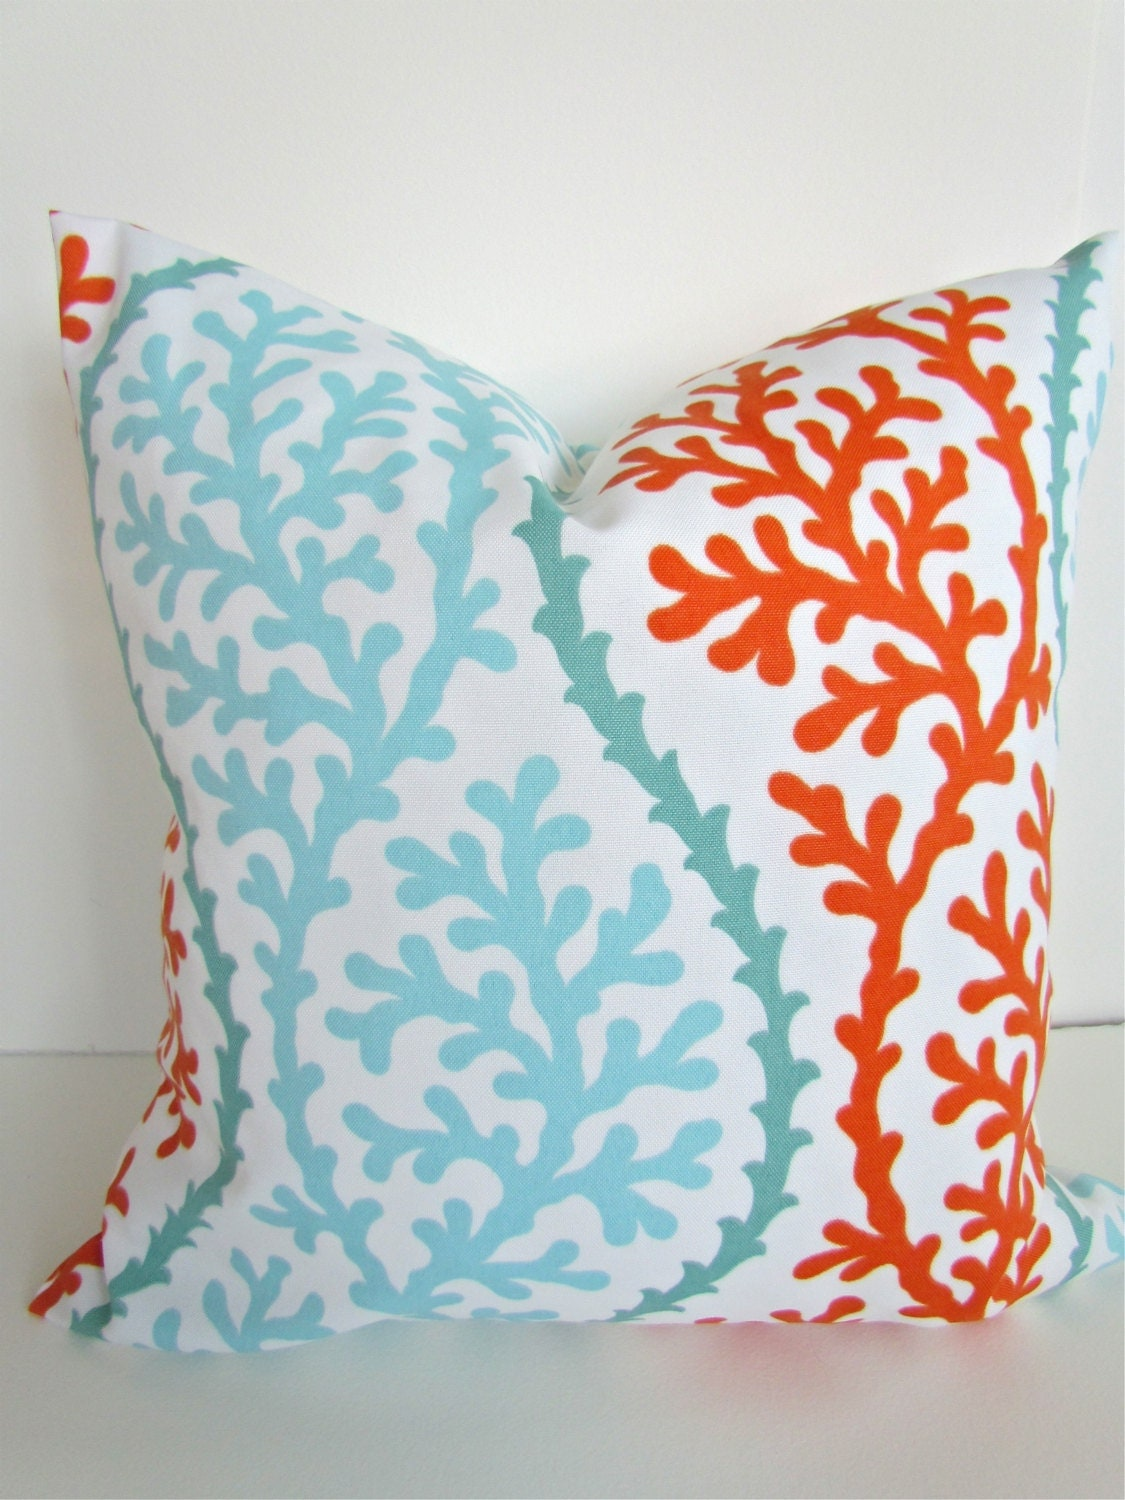 Coral and Mint PILLOWS CORAL Throw Pillow Covers 20x20 18 16